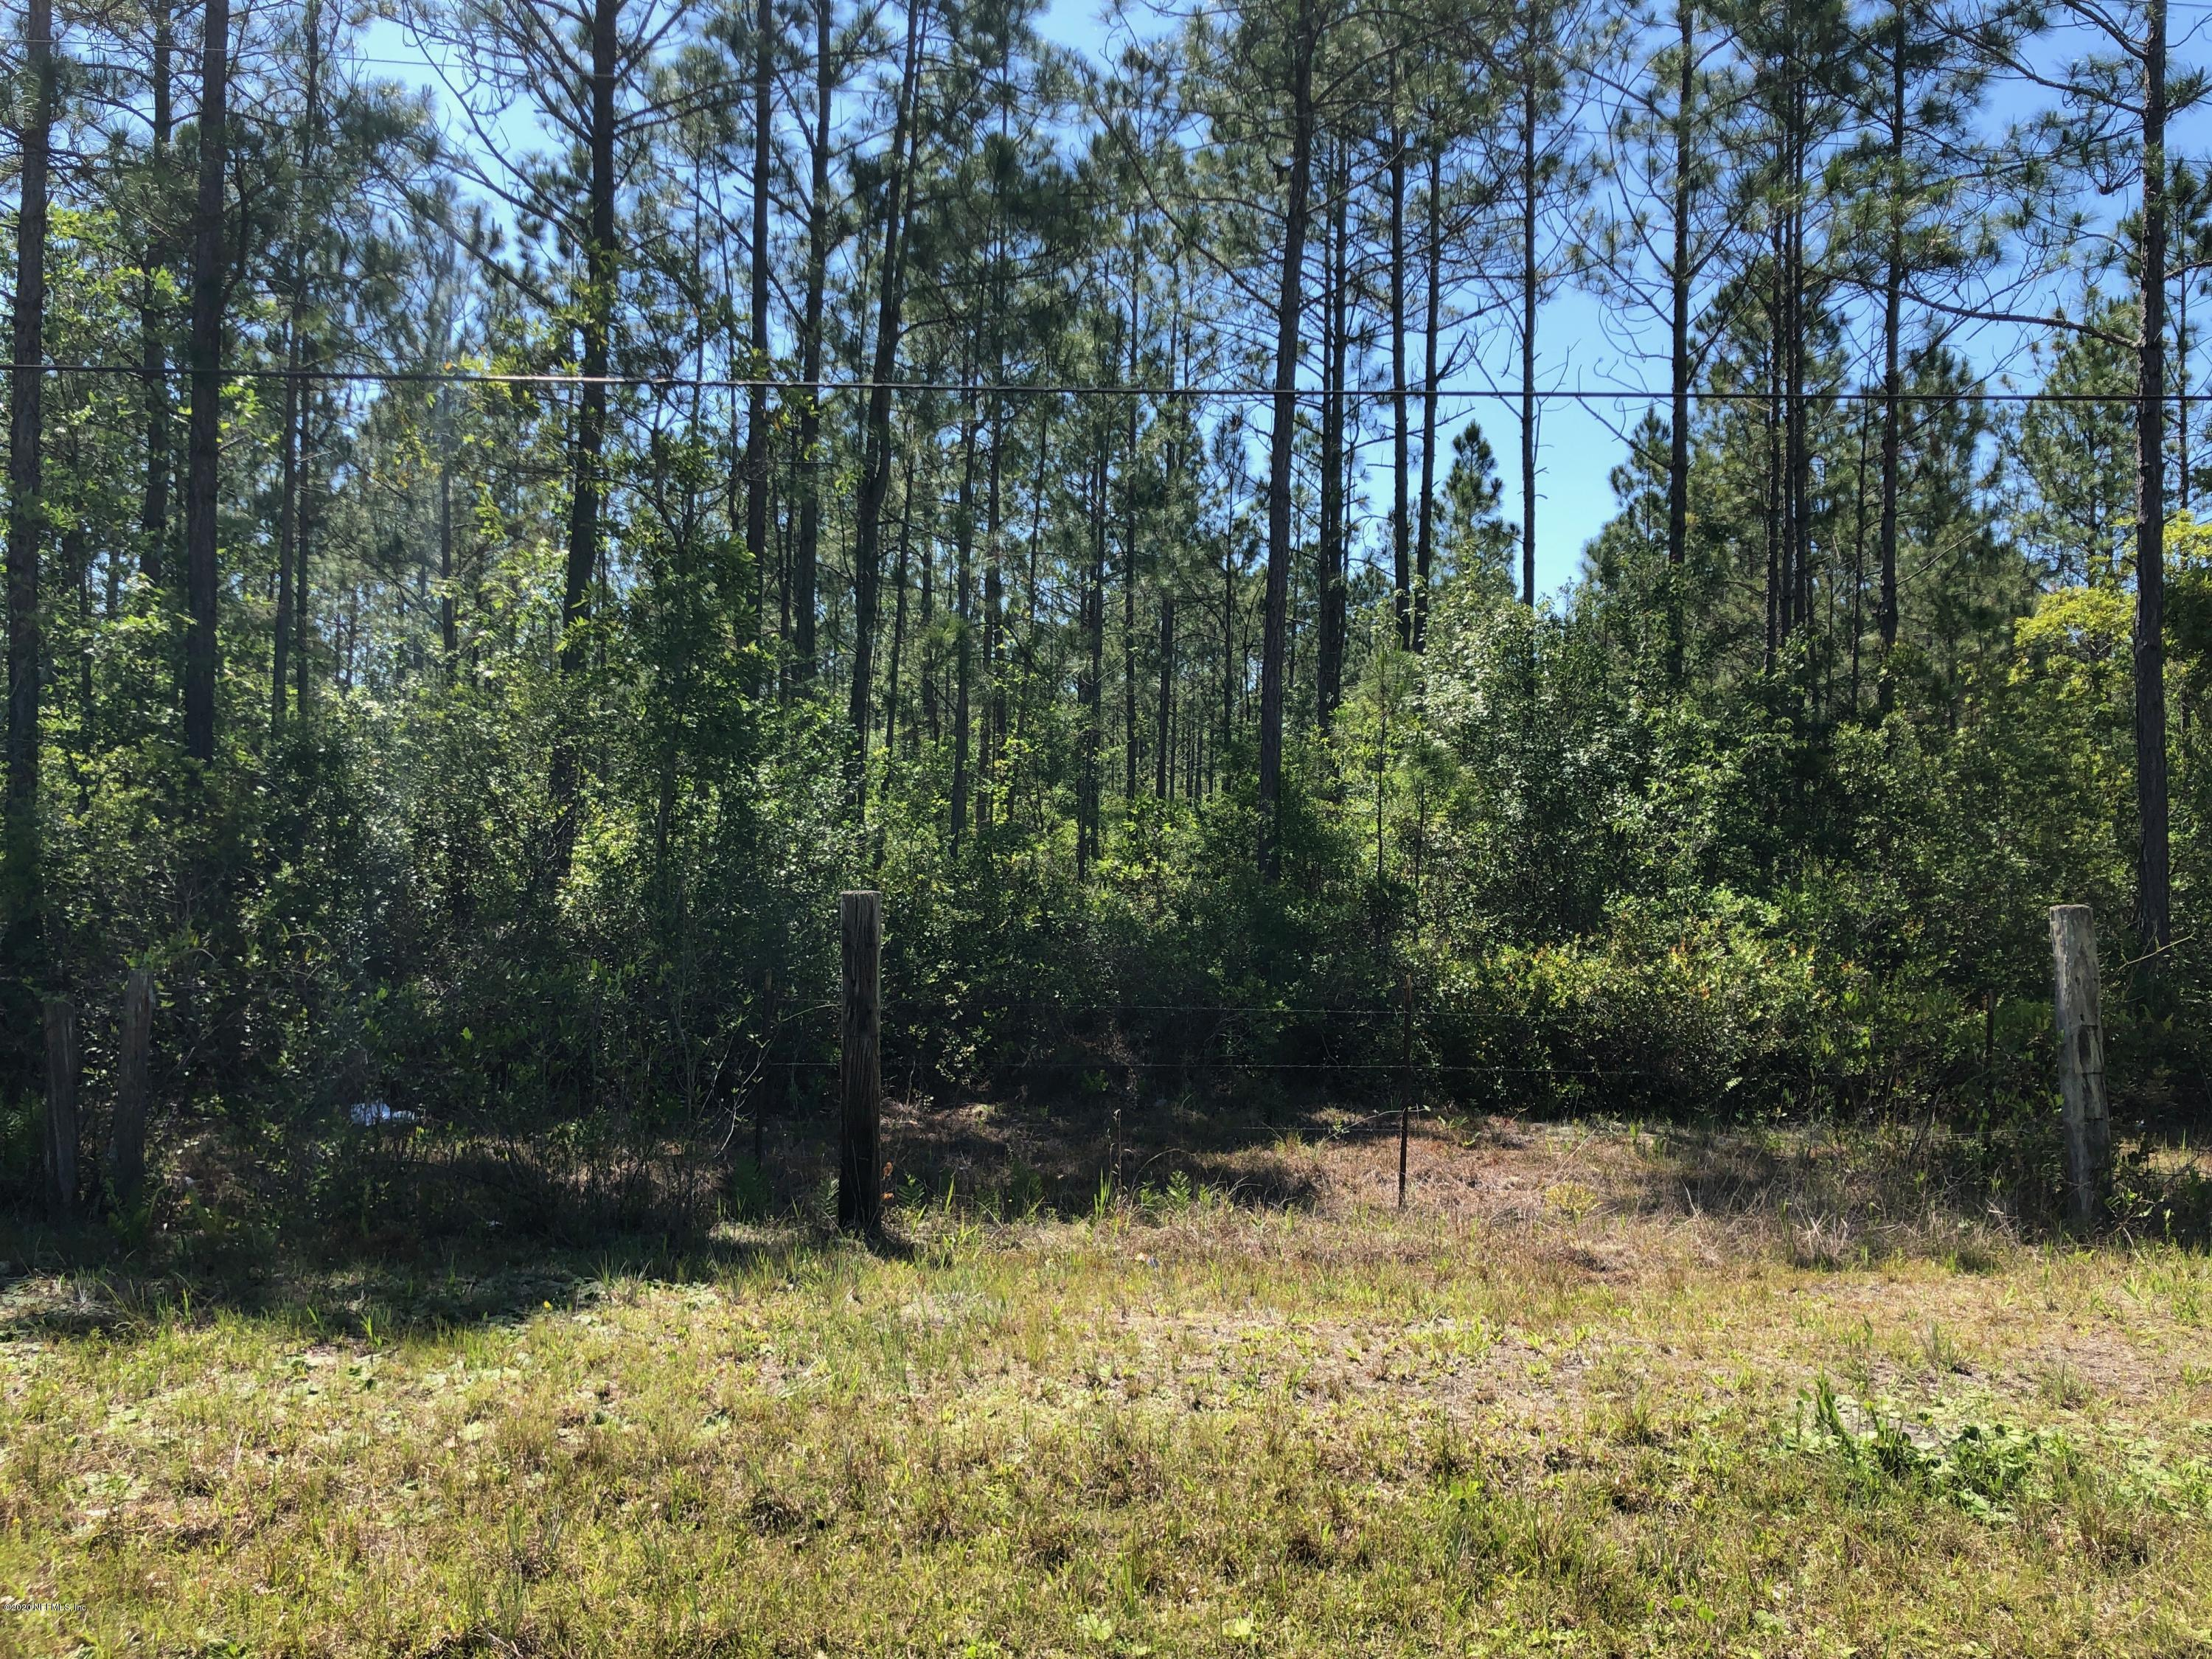 0 HID DUGGER, SANDERSON, FLORIDA 32087, ,Vacant land,For sale,HID DUGGER,1050826